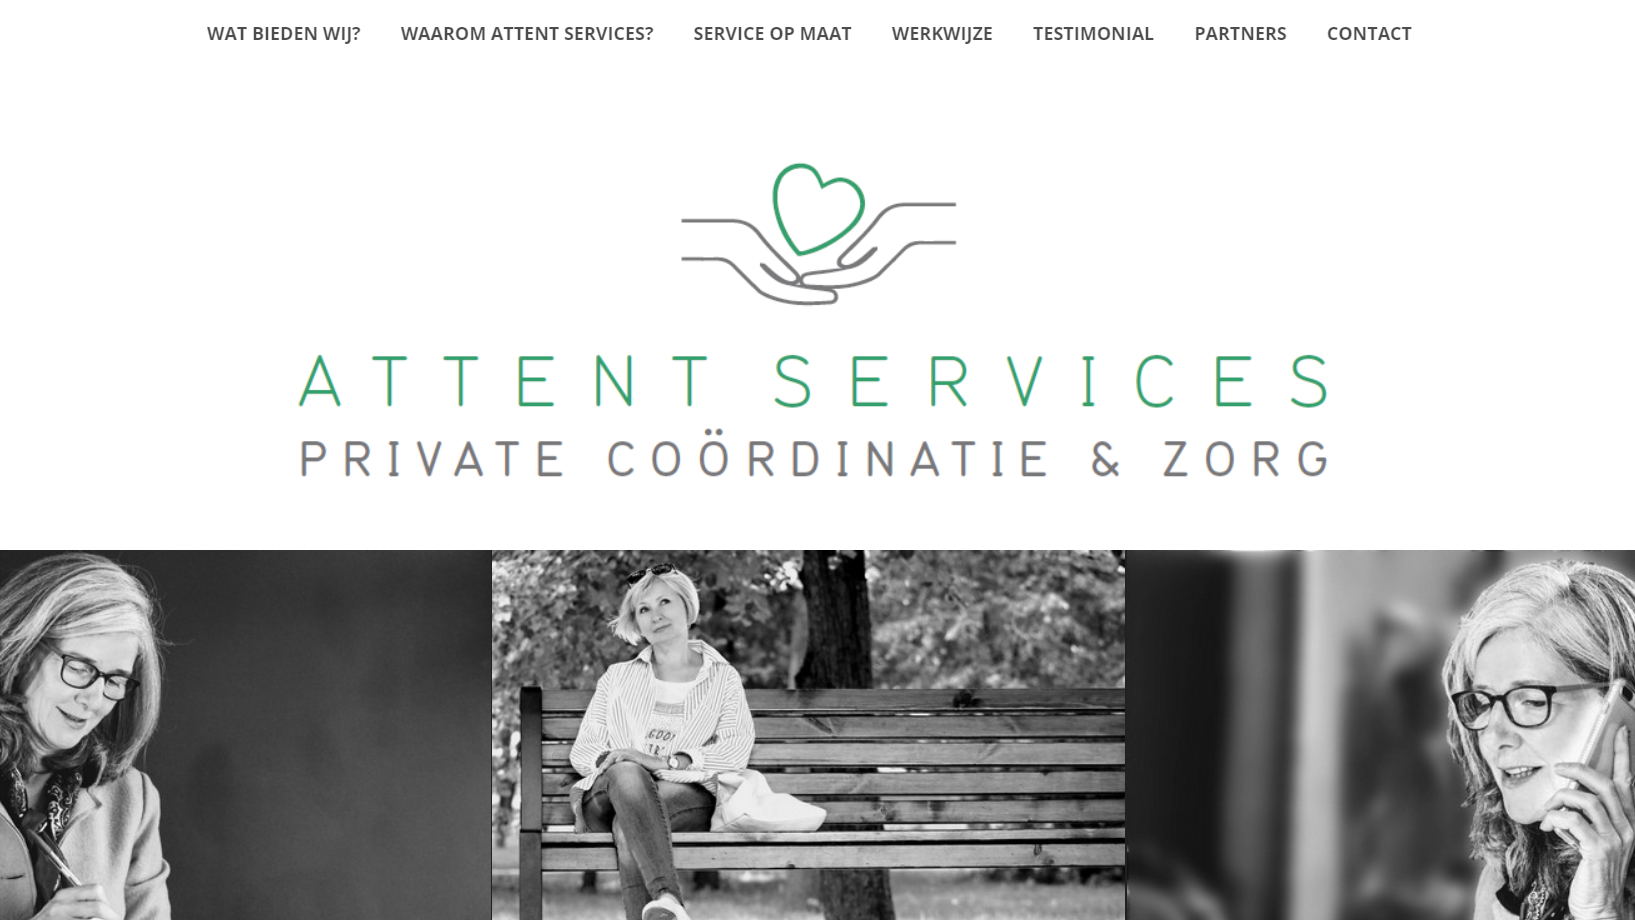 Attent services